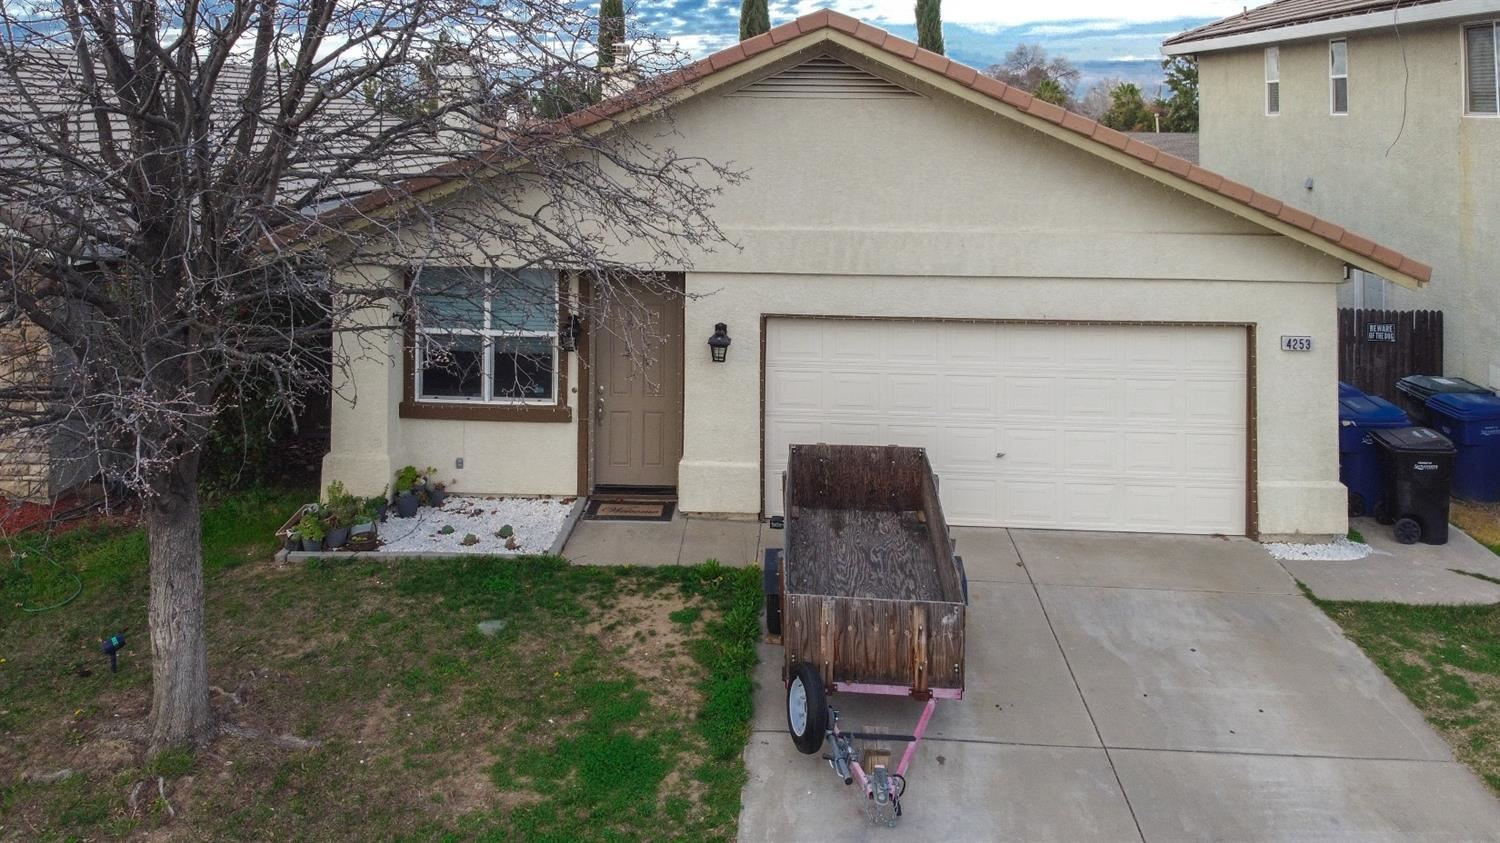 Photo of 4253 Eagle Ridge Way, Antelope, CA 95843 (MLS # 221008096)